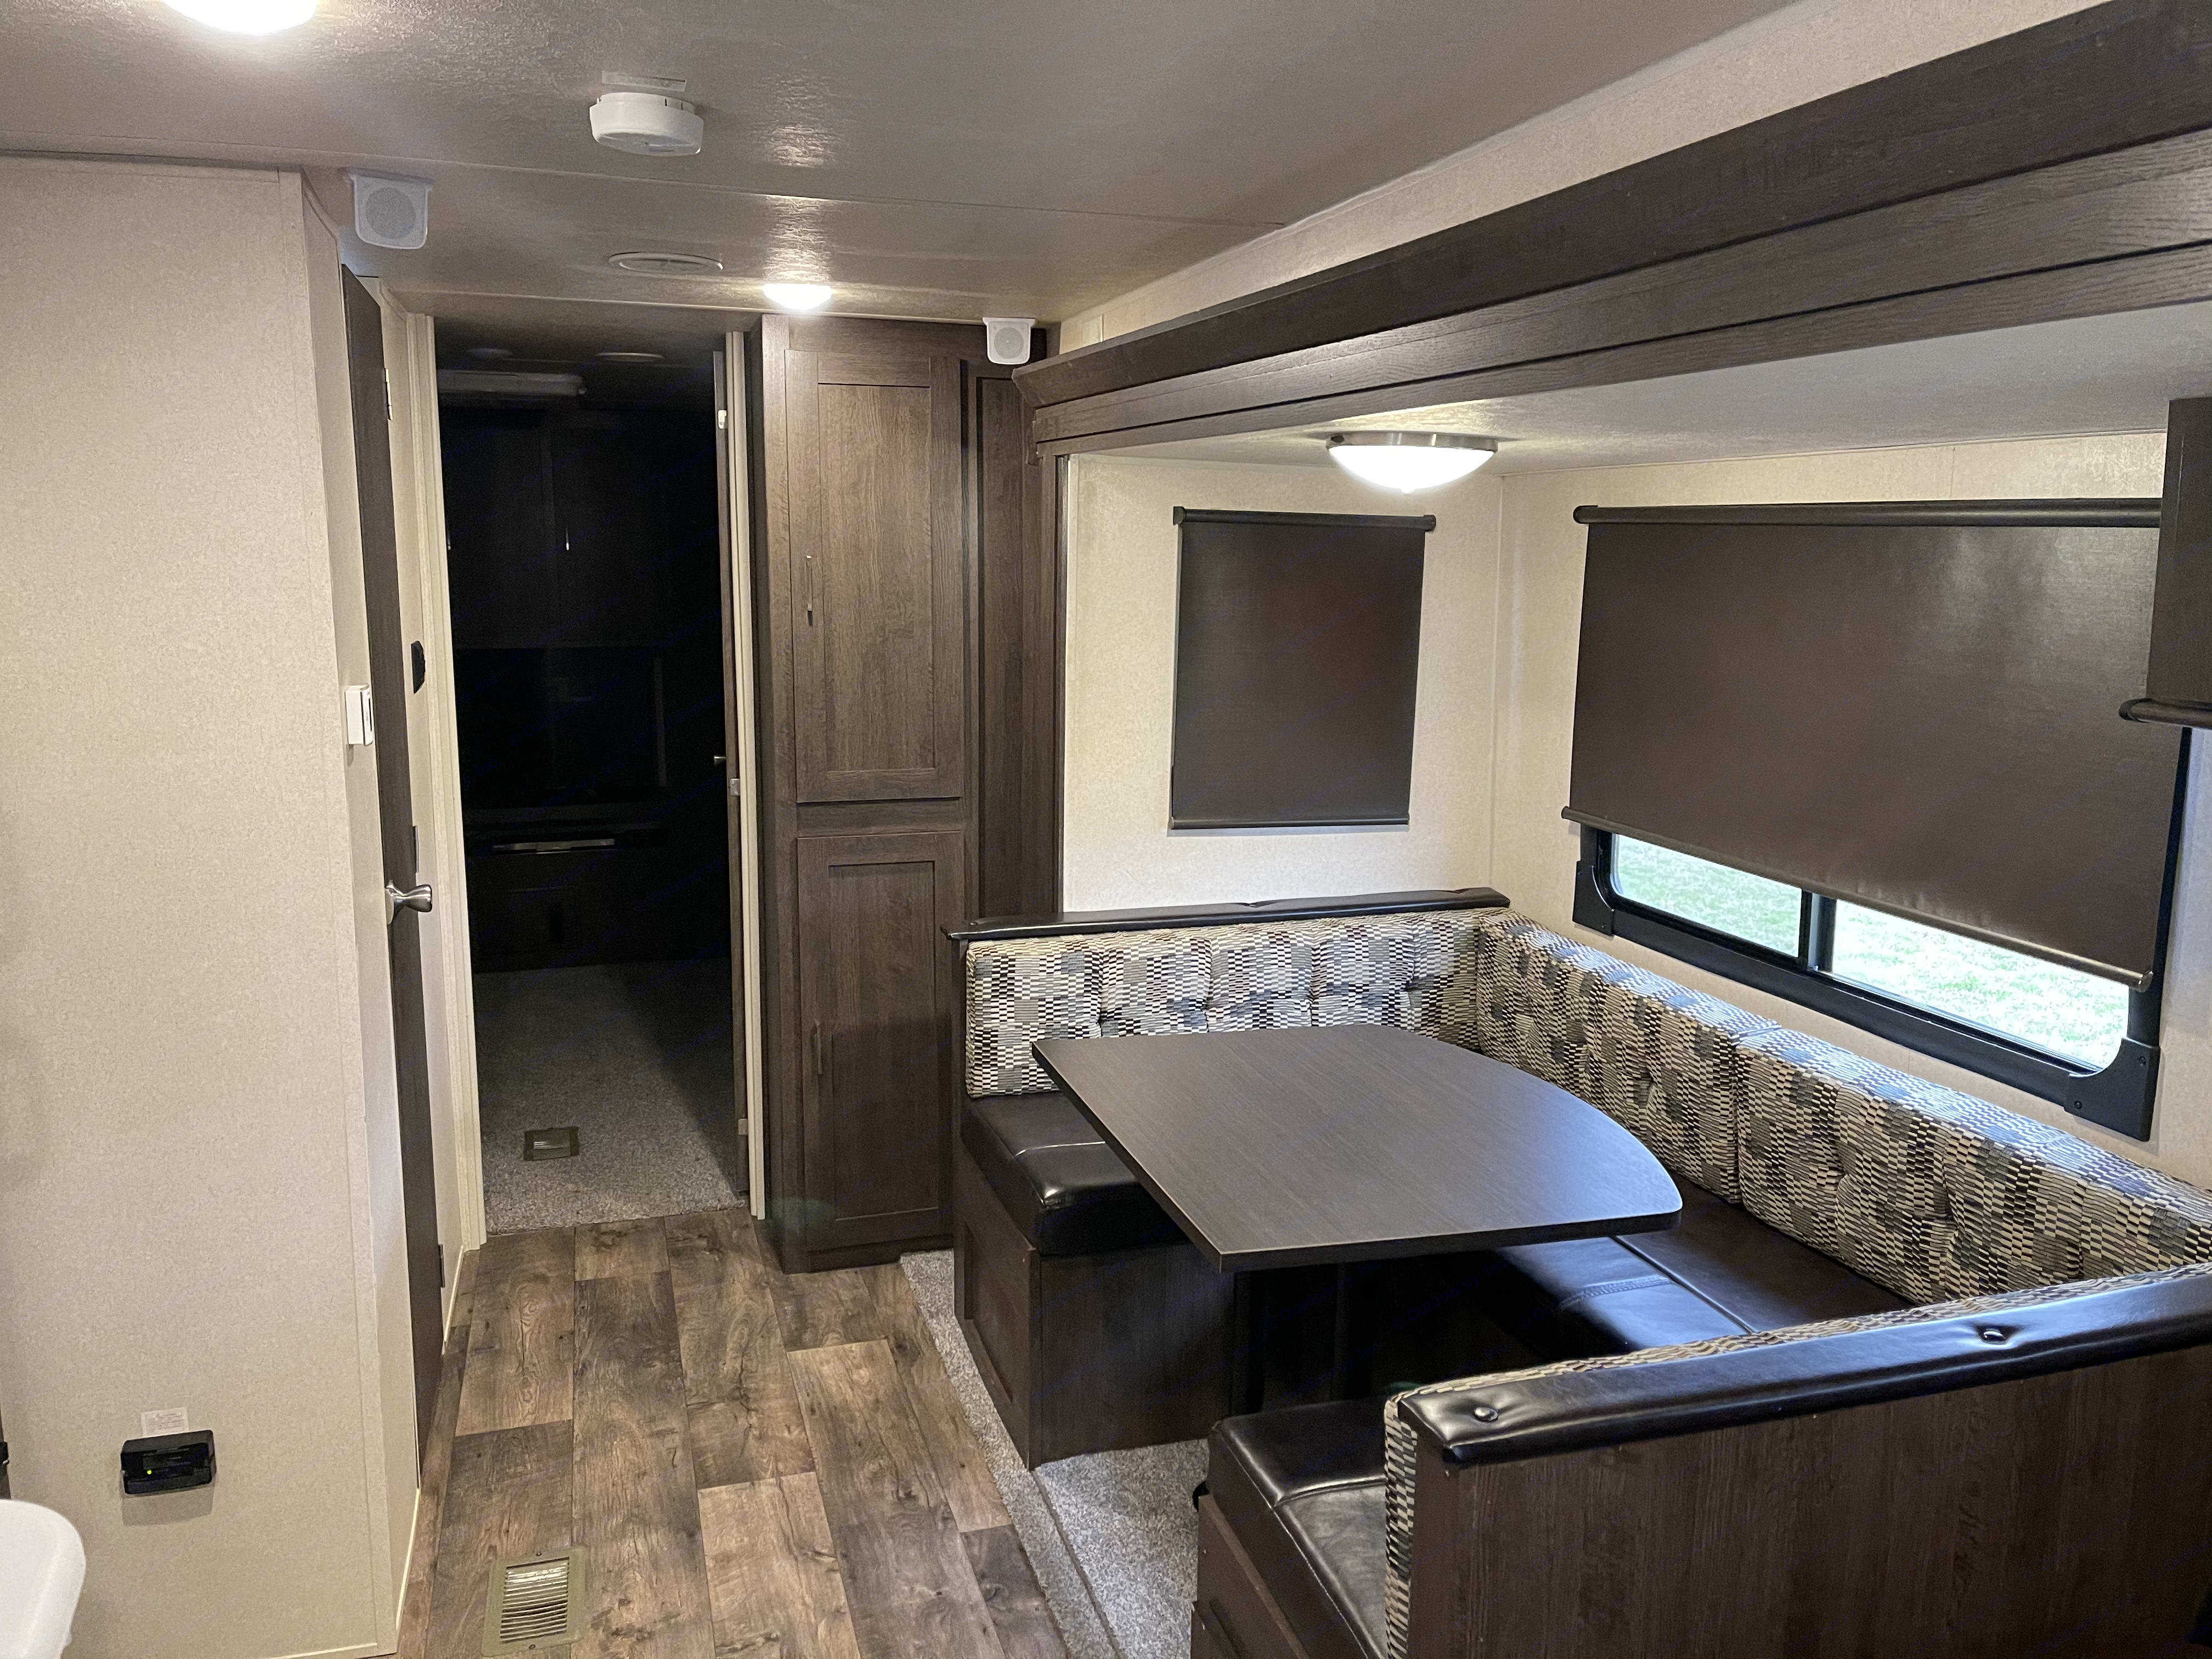 Dinette table converts into a bed that sleeps 2 adults or a few kids : ). Forest River Wildwood 31KQBTS 2018